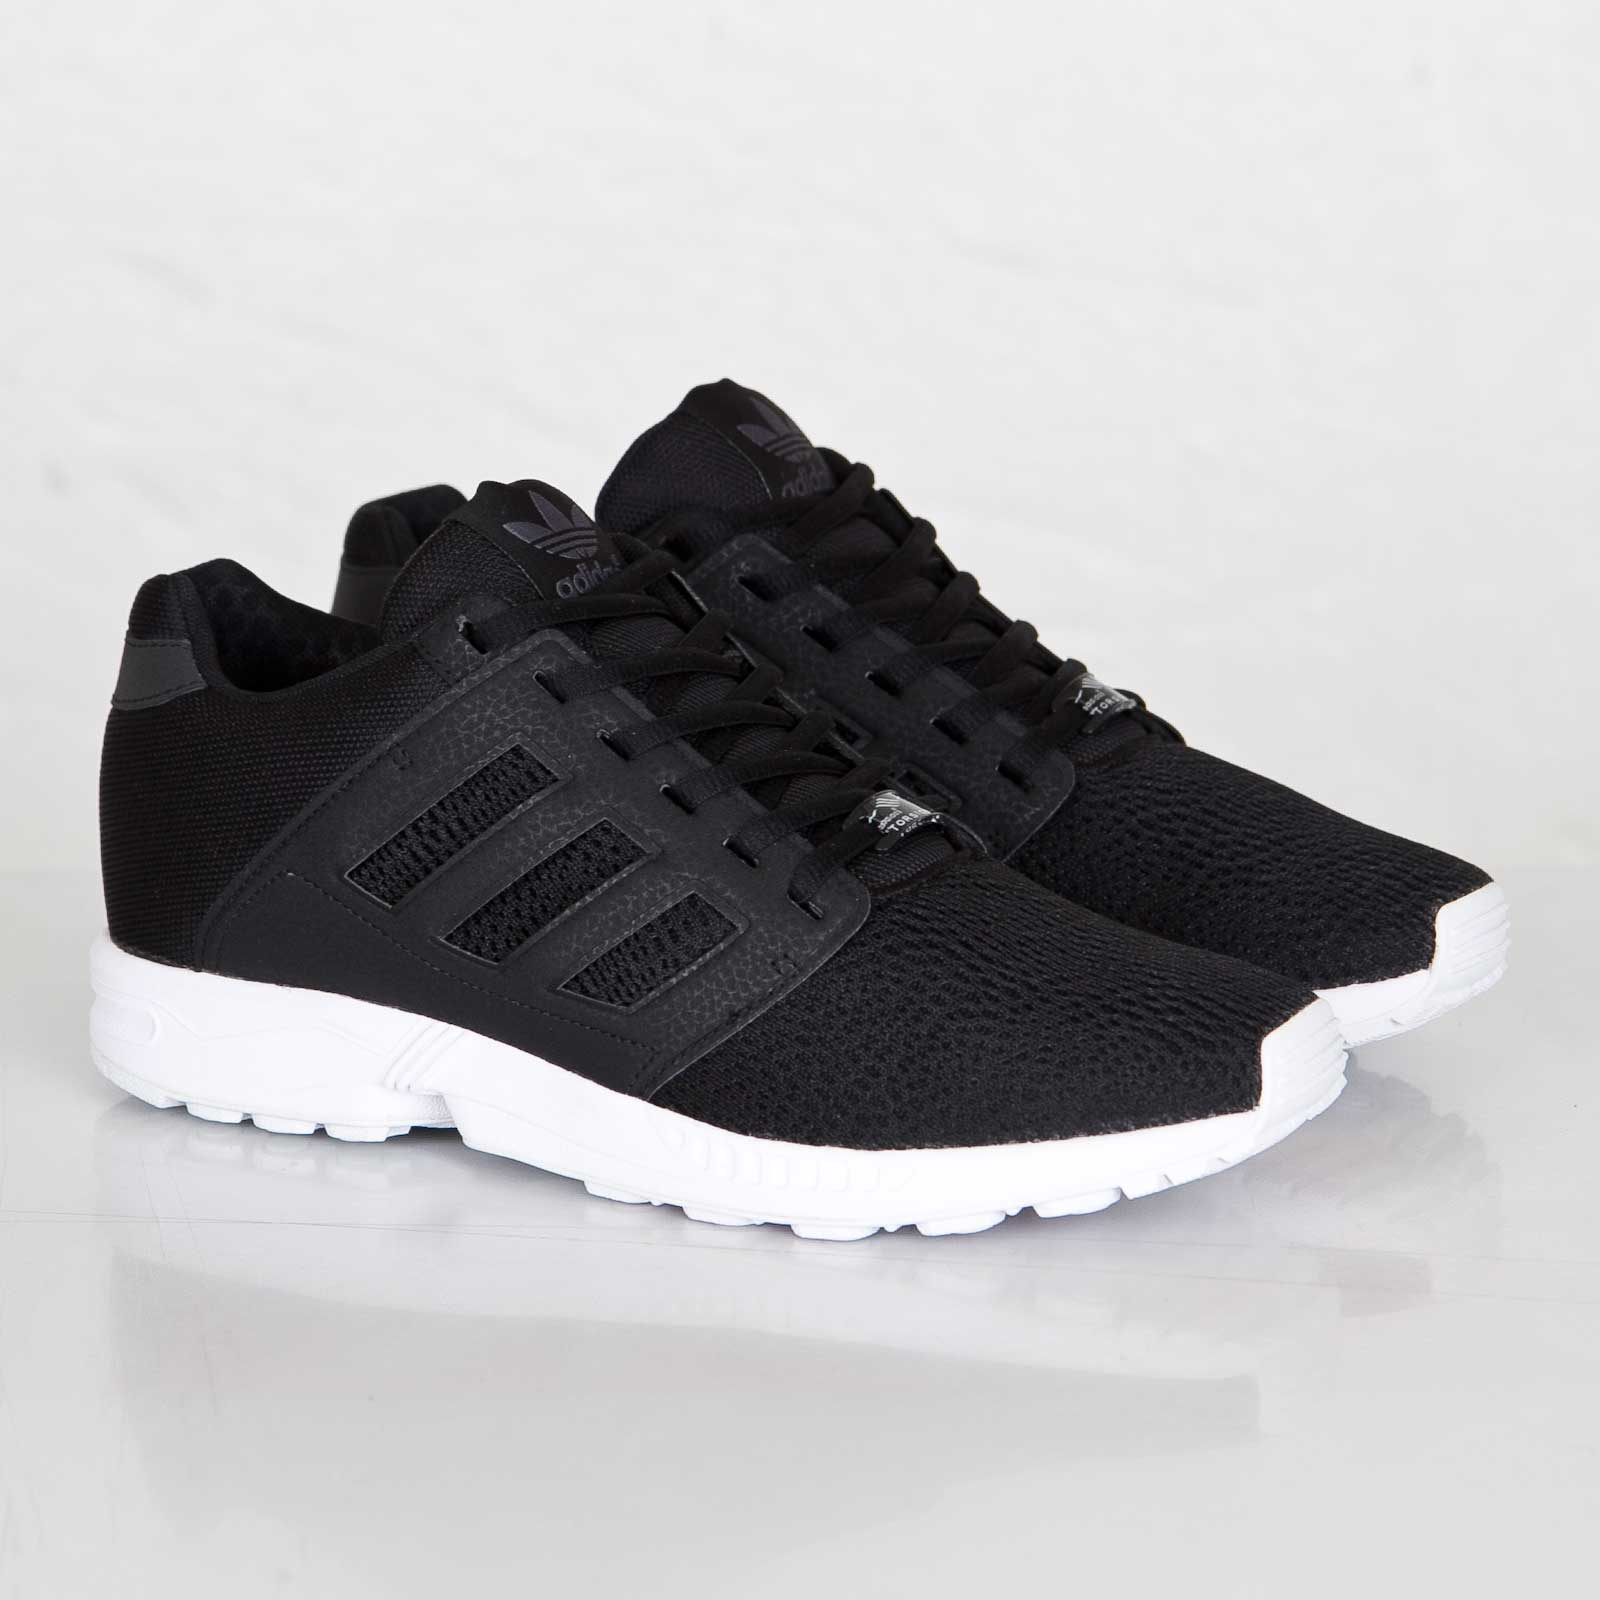 sports shoes 6a5bc ad075 adidas ZX Flux 2.0 - M21335 - Sneakersnstuff | sneakers ...